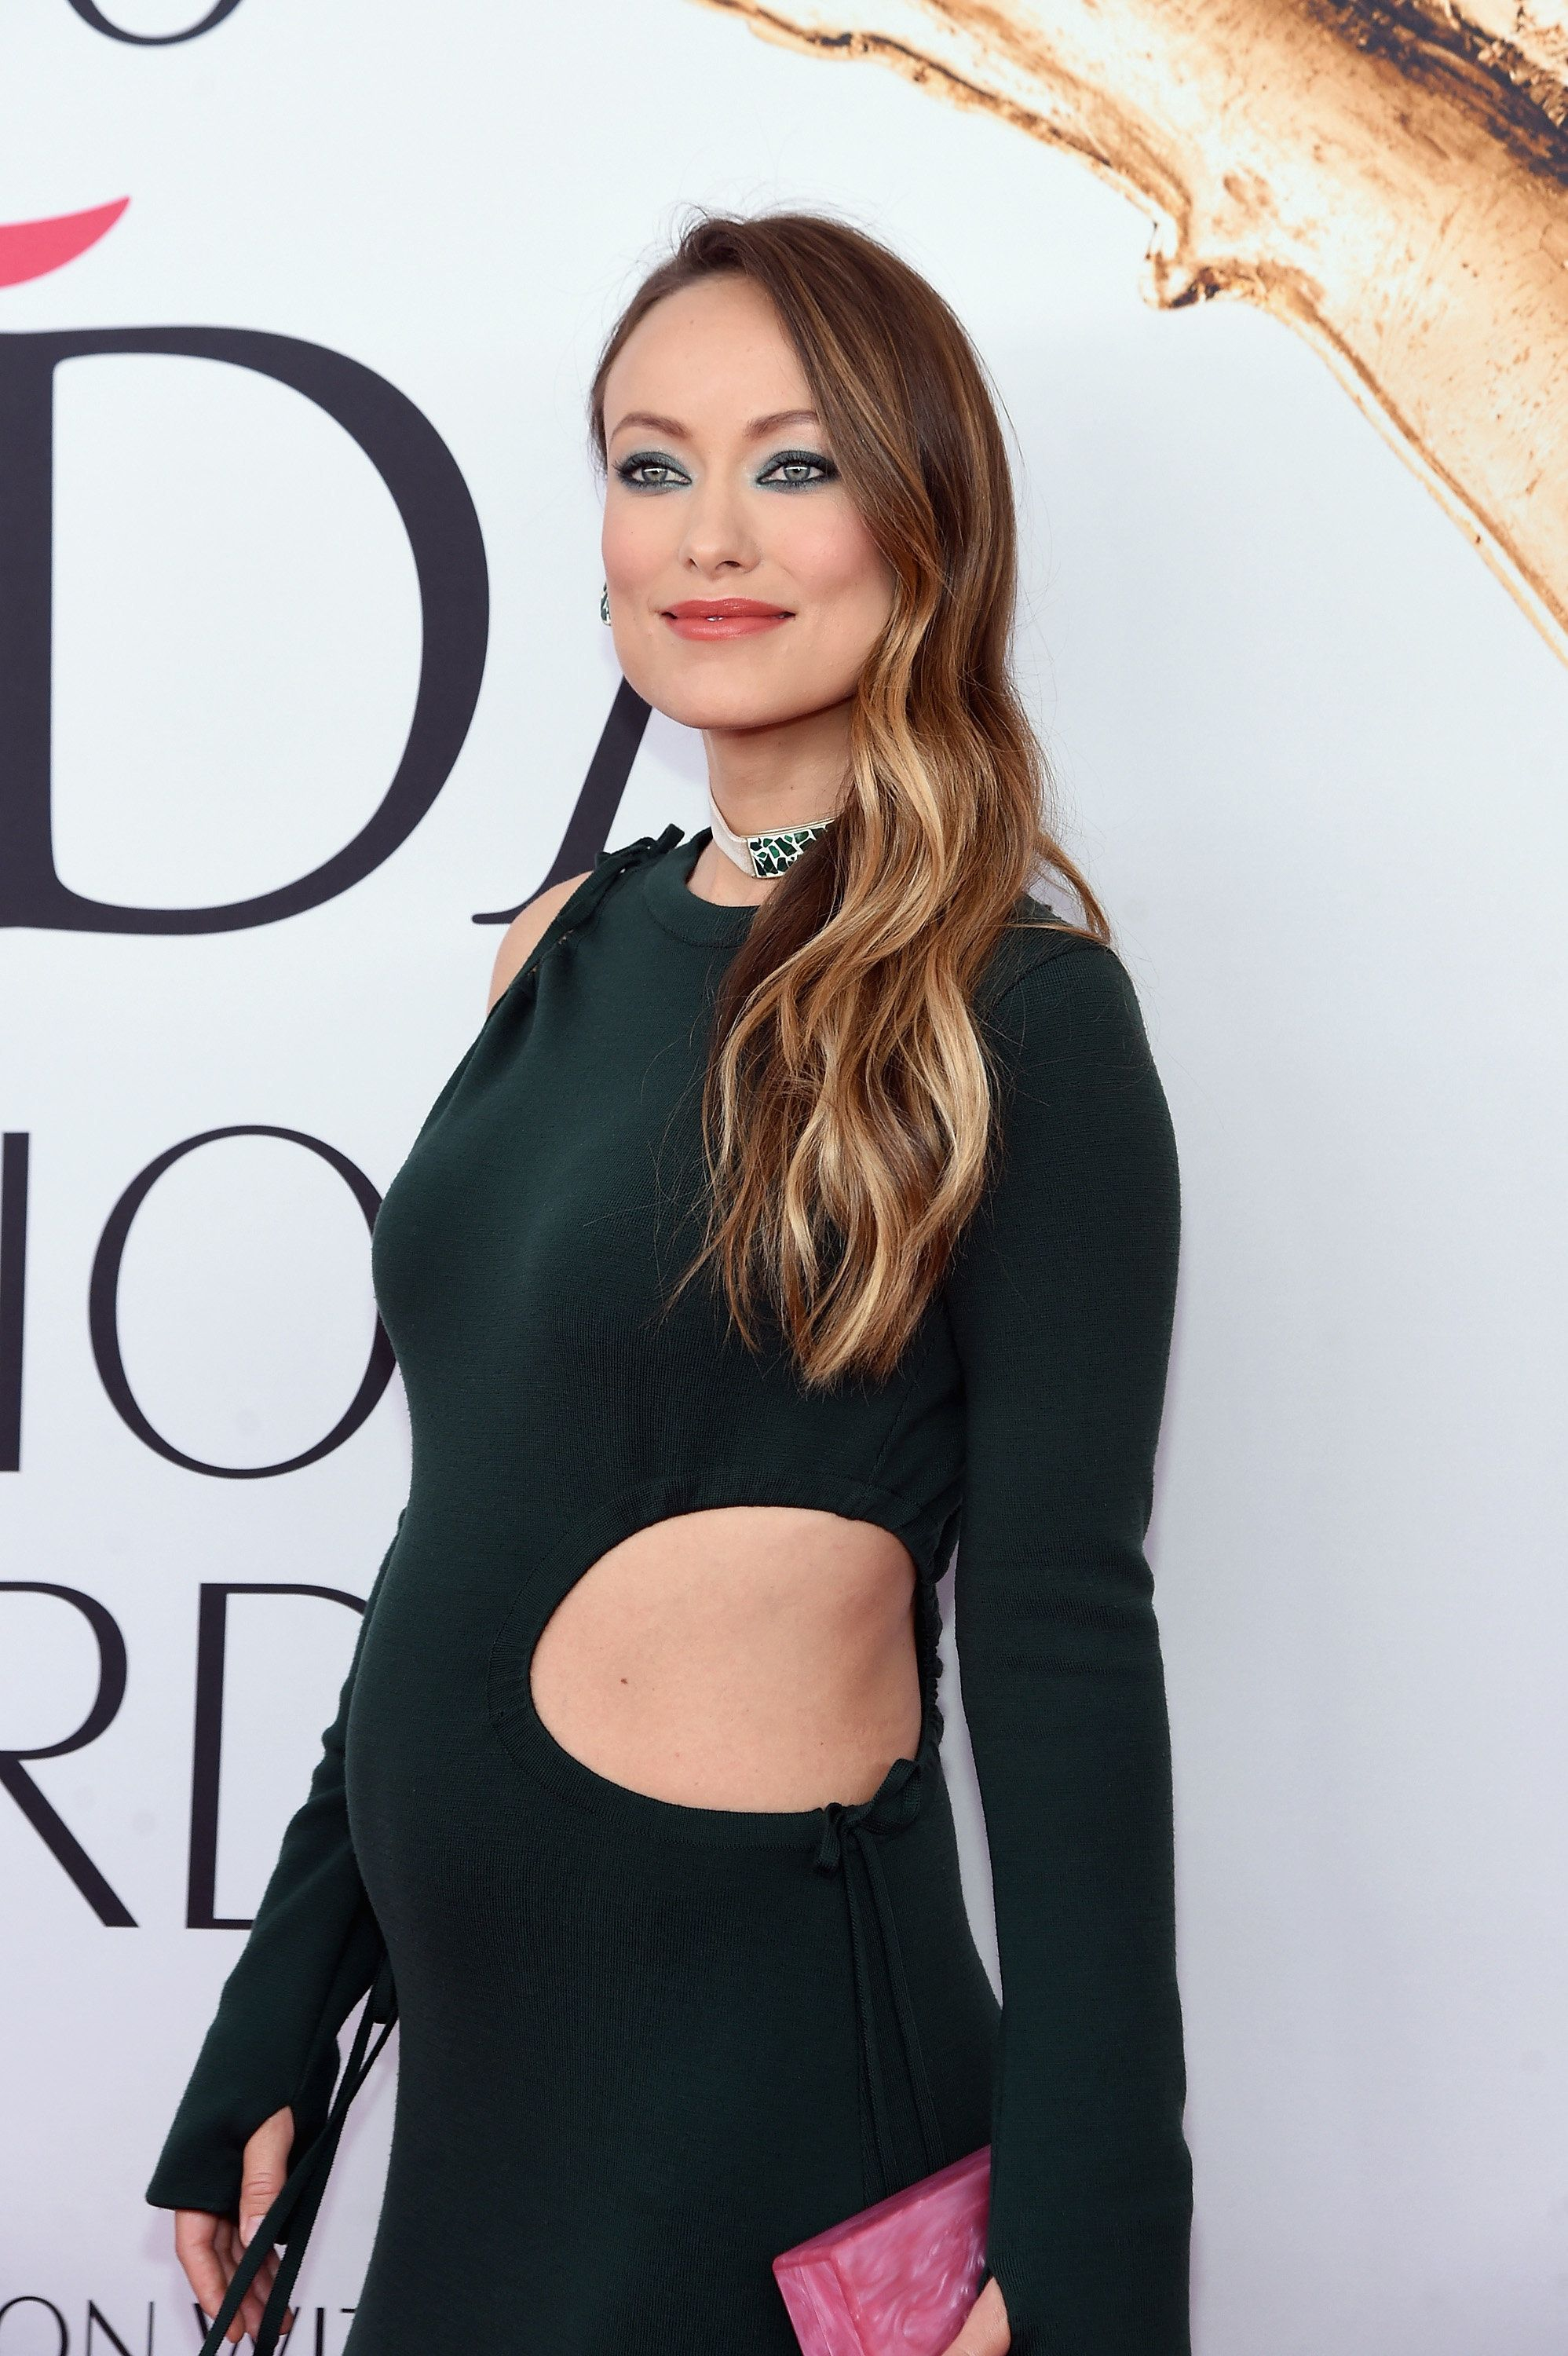 Pregnant Olivia Wilde Wows In A Strategically Cut-Out